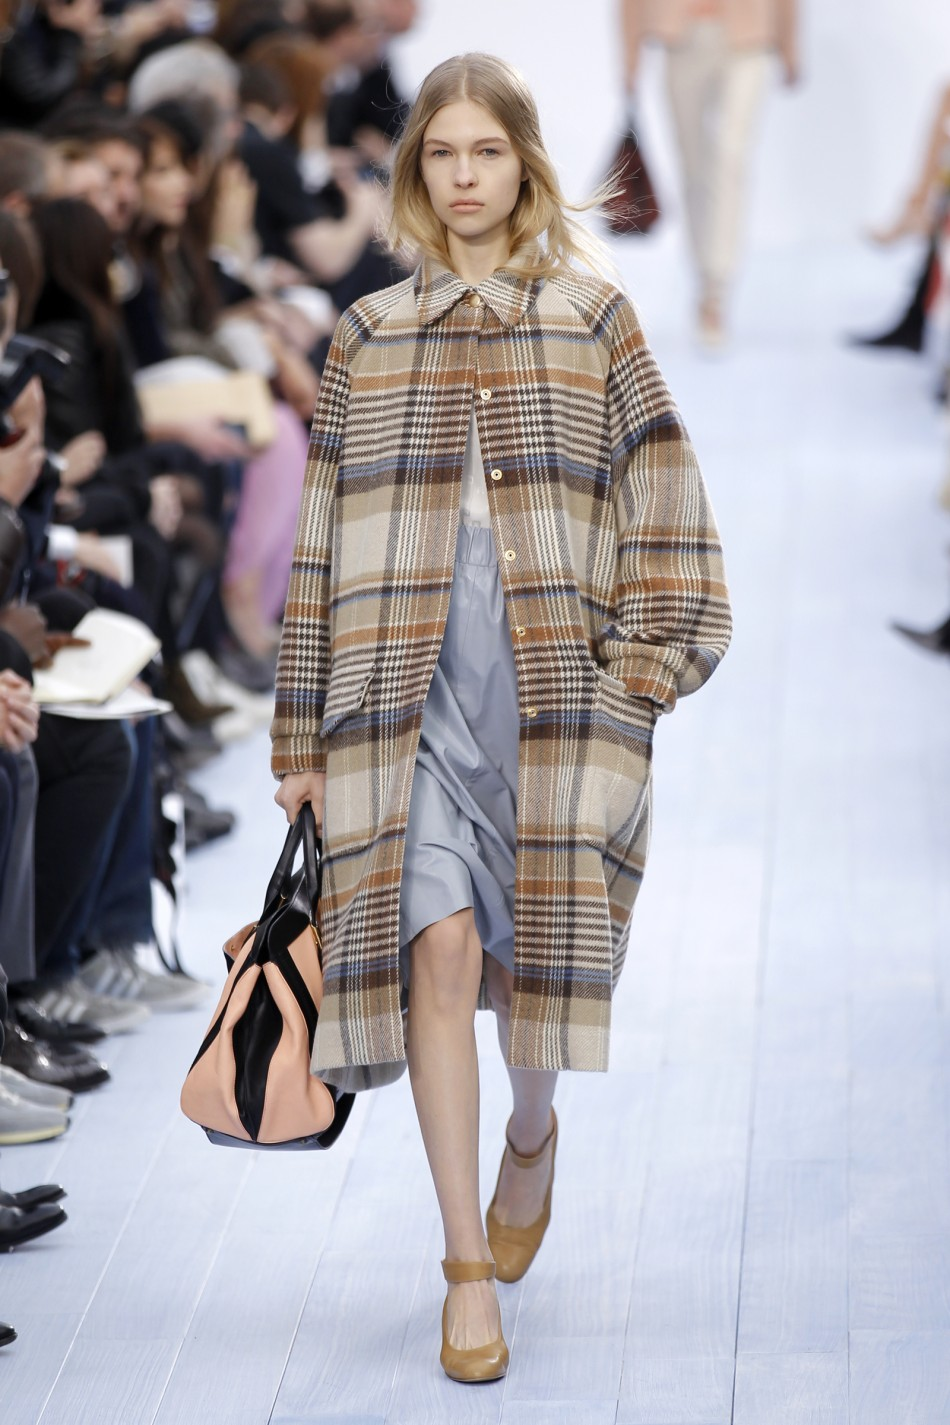 Paris Fashion Week: Chloe's Light and Wearable Fall/Winter Creations